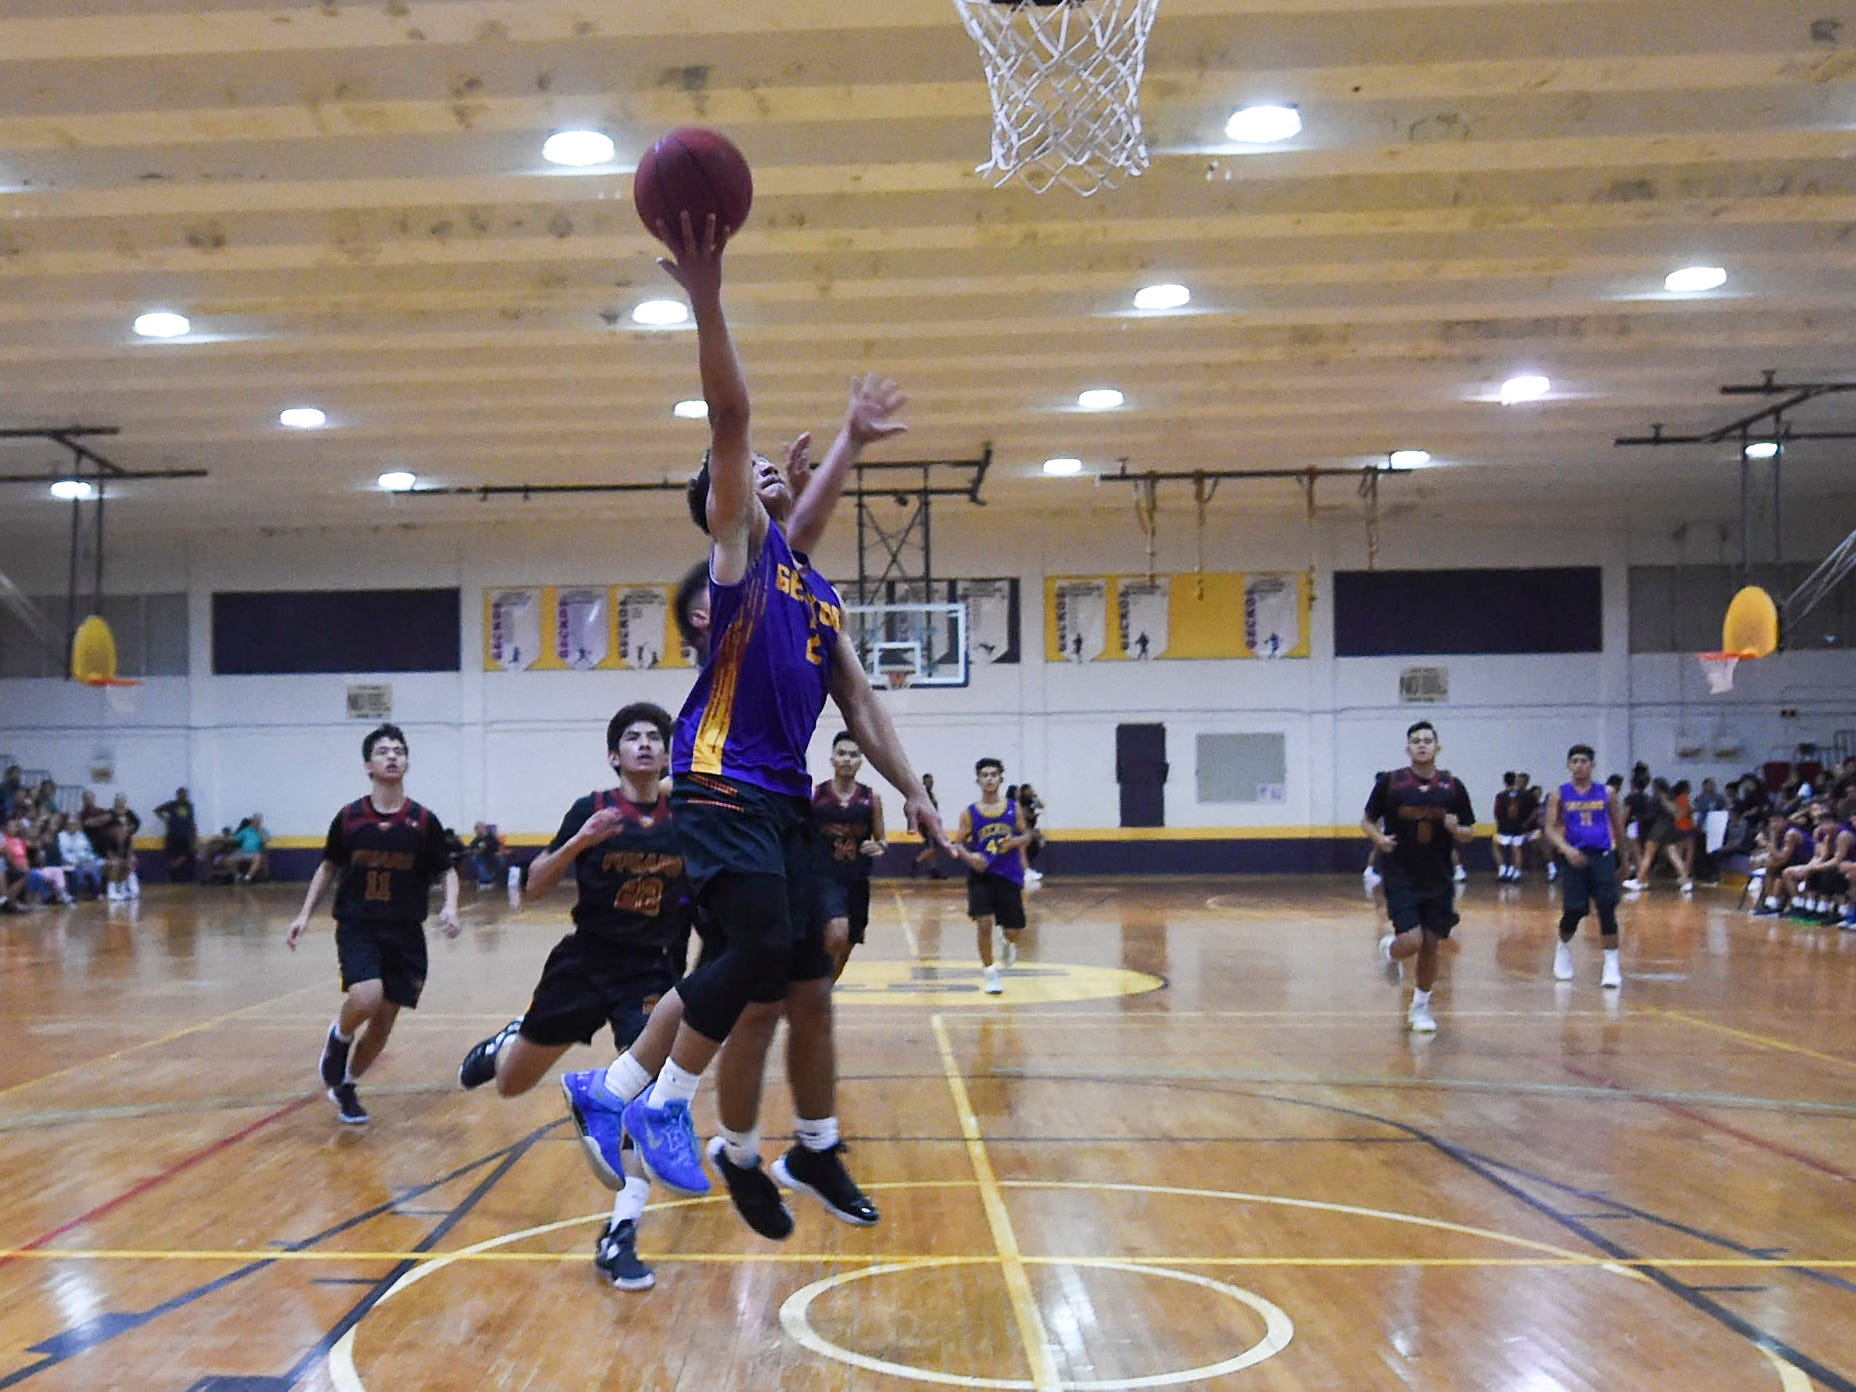 George Washington's Dylan Trusso (2) skies for a layup on a fast break against the Father Duenas Friars during their Independent Interscholastic Athletic Association of Guam Boys' Basketball game at the GW High School gym, Jan. 19, 2019. The Friars came through with a 52-69 comeback victory over the Geckos after trailing in the first half.